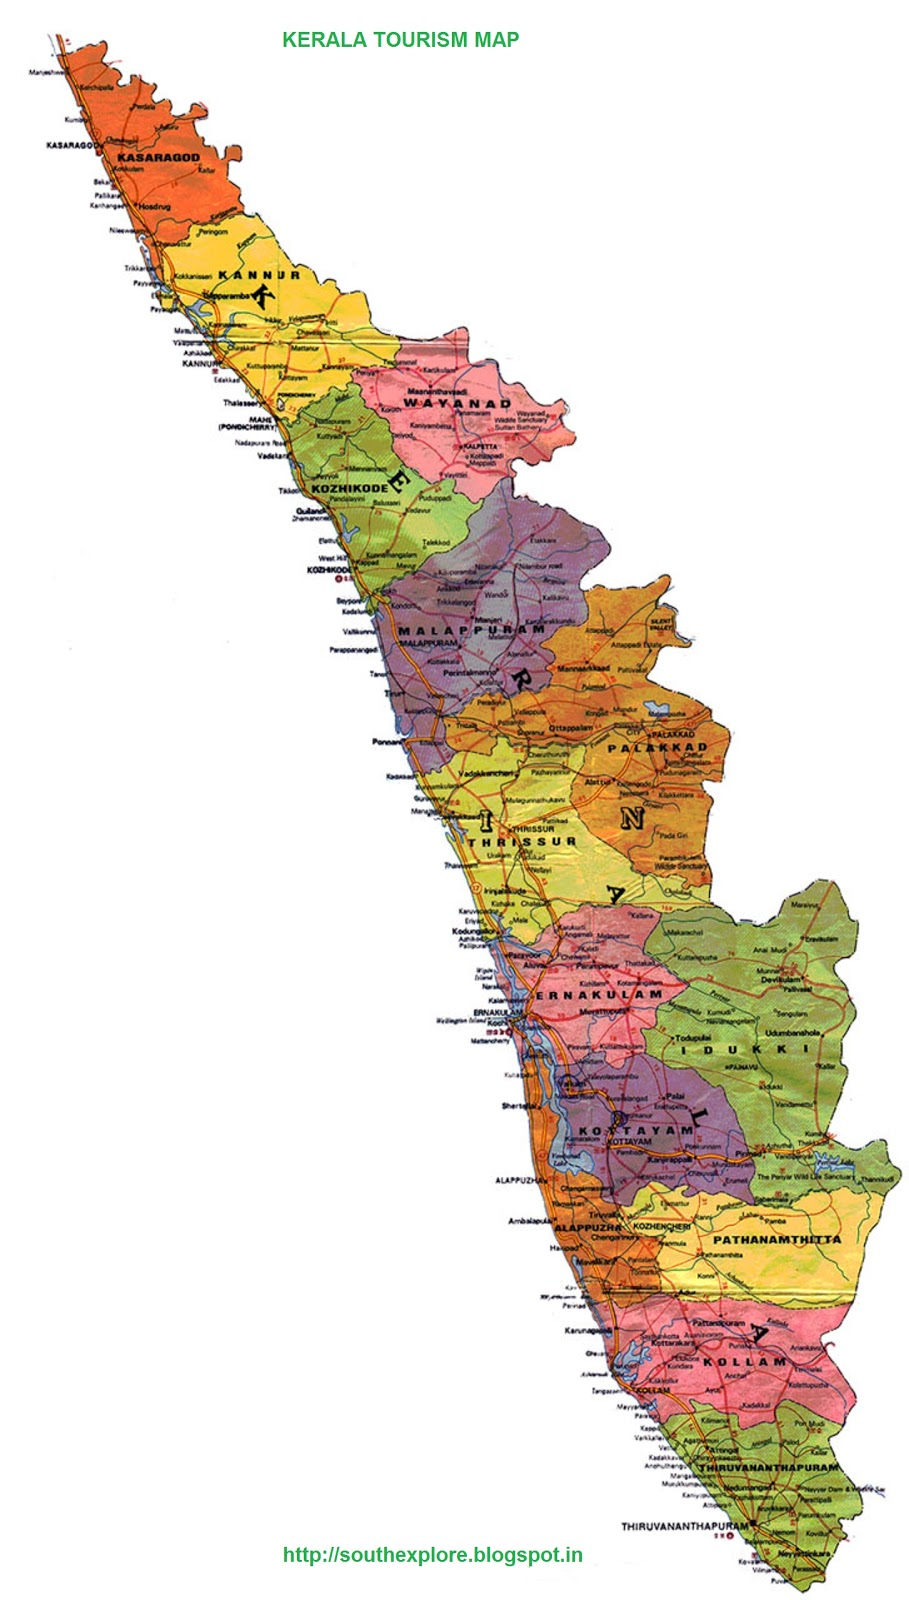 KERALA TOURISM MAP TOURIST PLACES IN KERALA SOUTH INDIA TOURISM – Tourist Map of Kerala